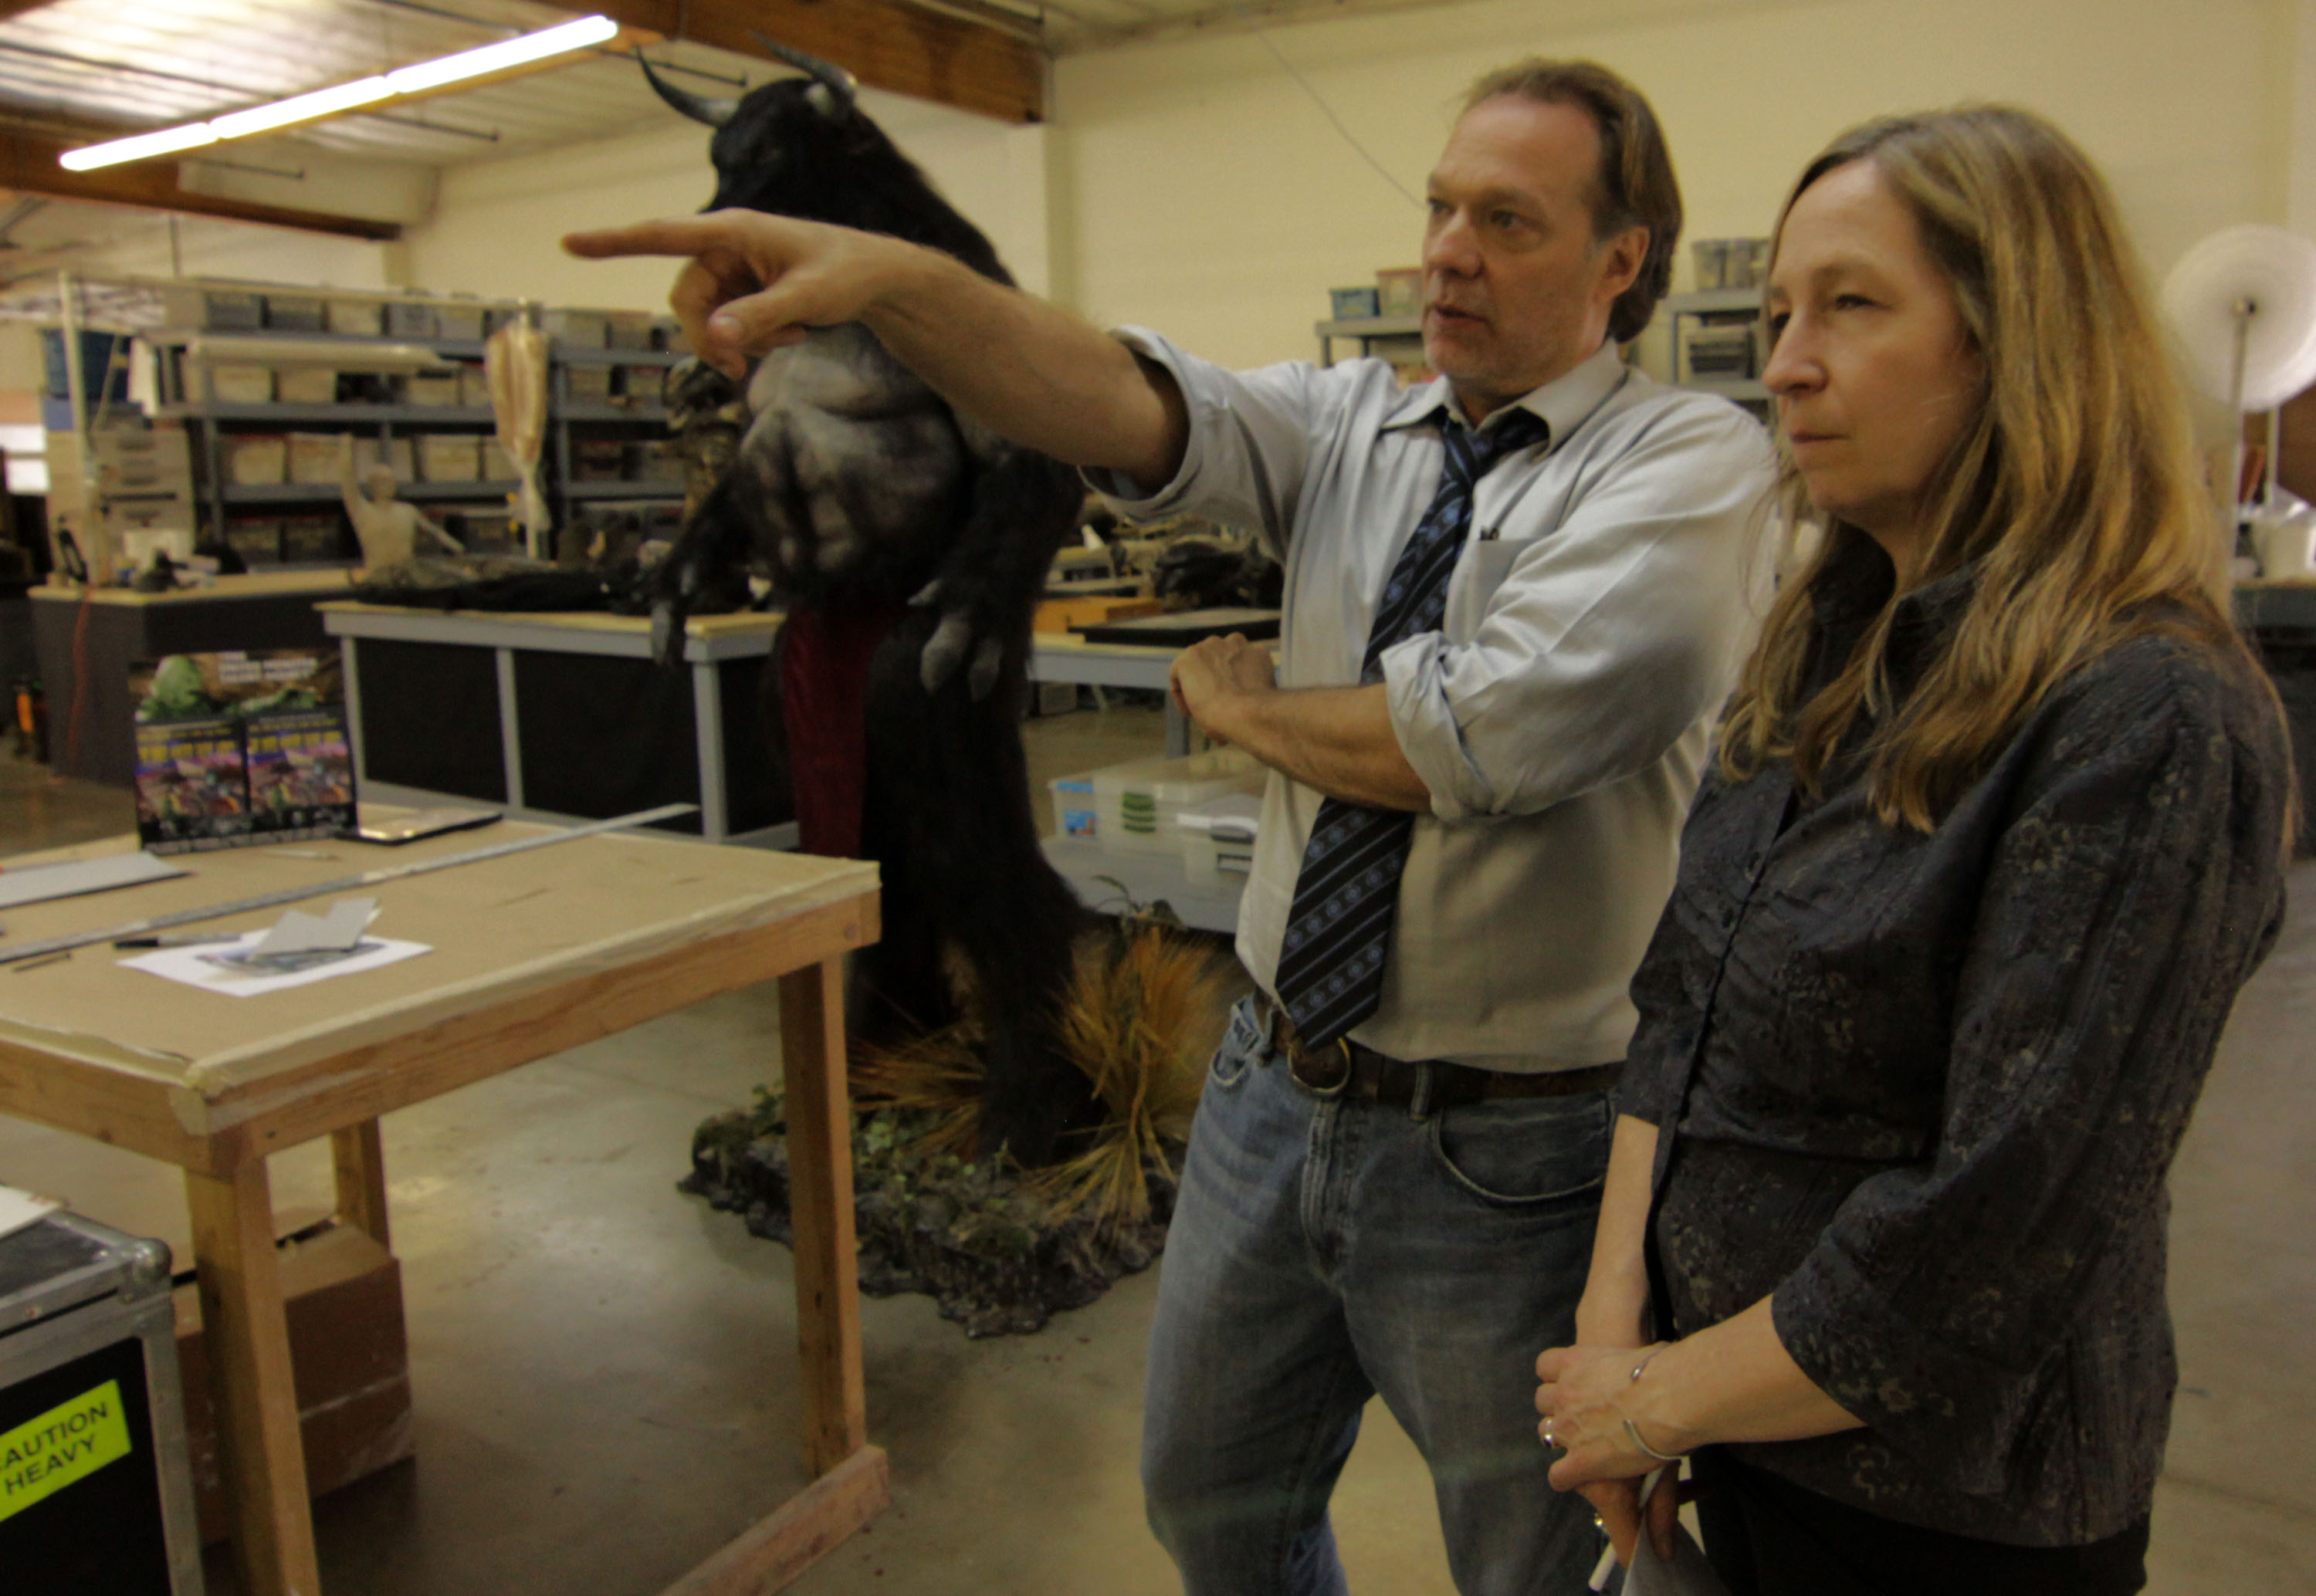 Greg Nicotero shows director Donna Davies around the K.N.B studio in Nightmare Factory (2011)